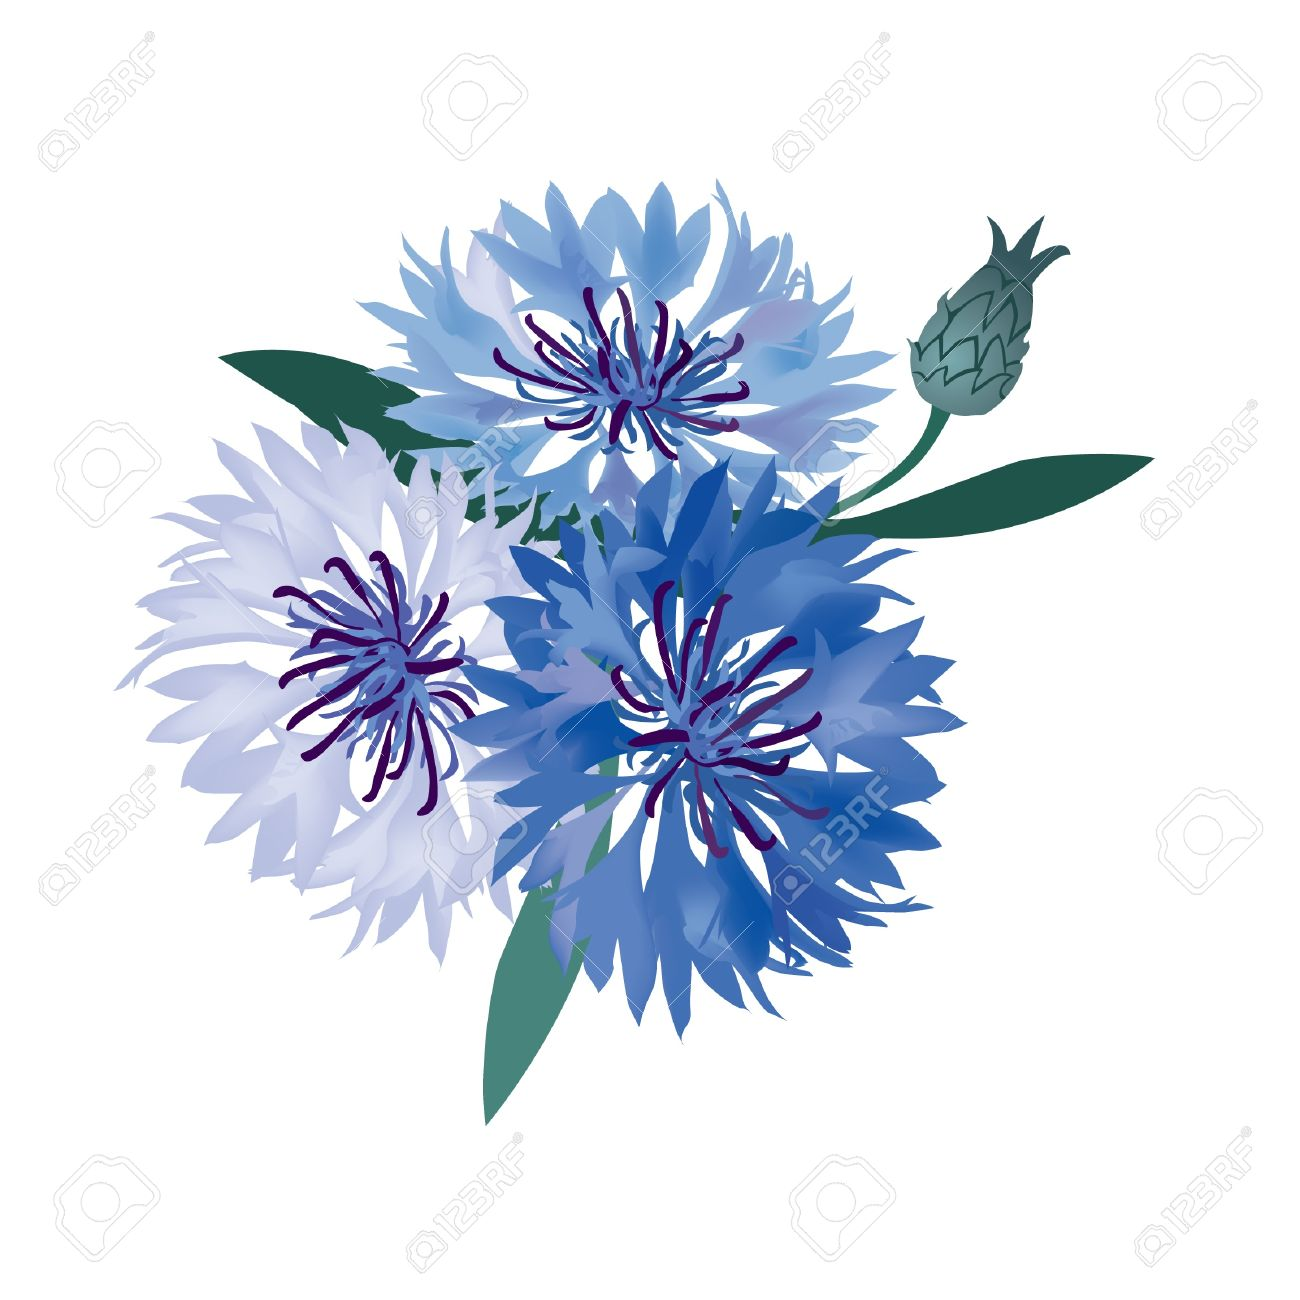 Flower Bouquet Vector Illustration Blue Cornflower Royalty Free.